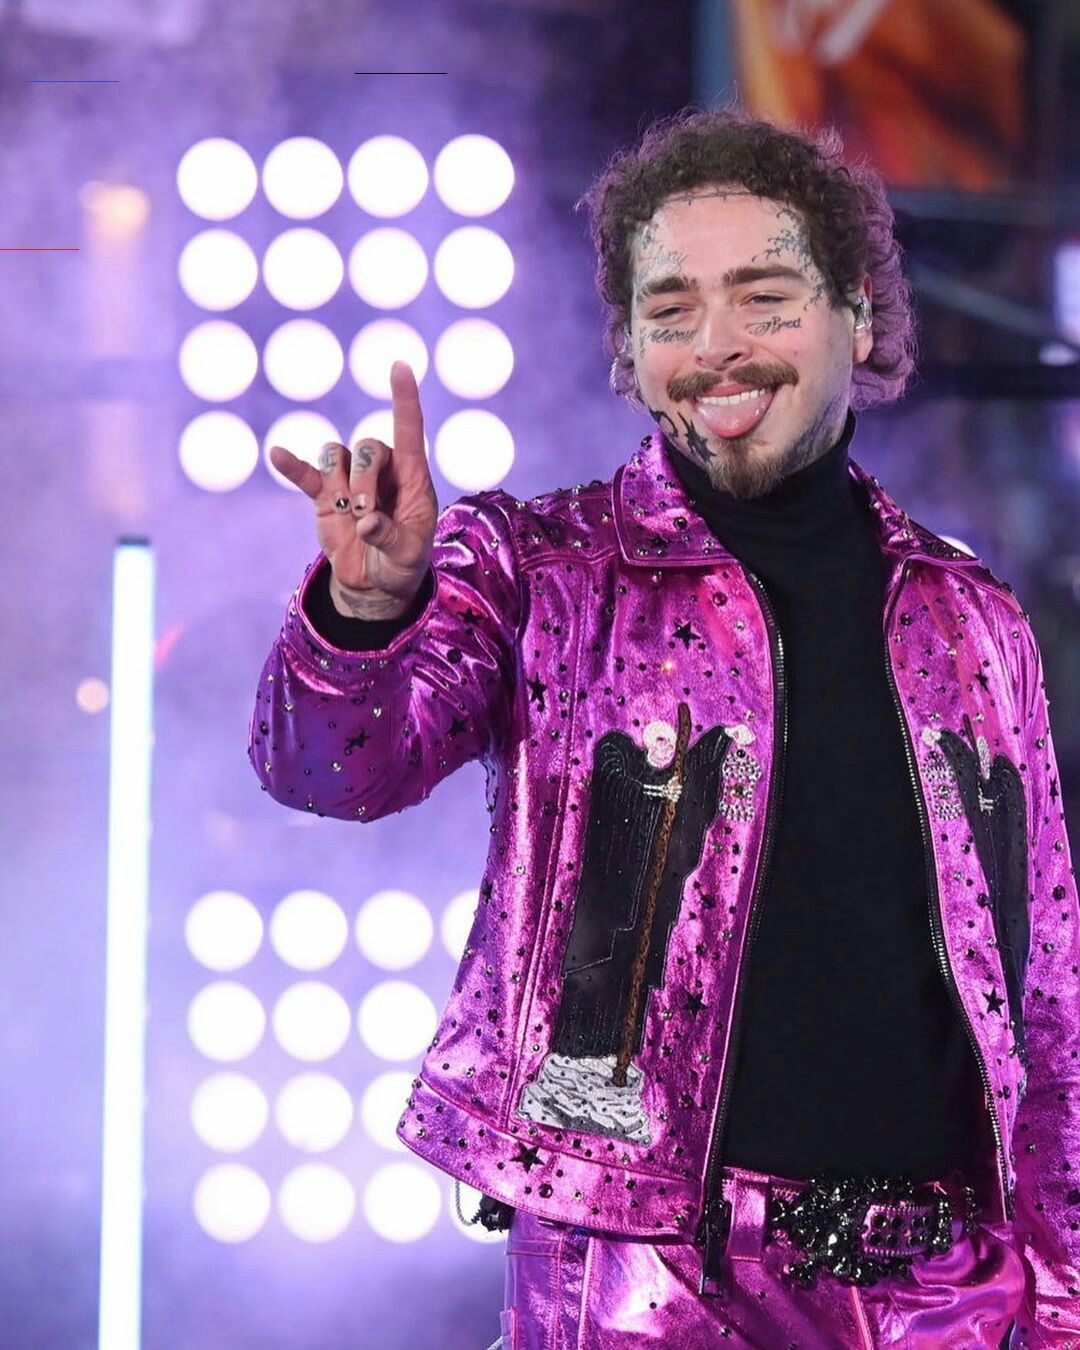 Pin by Anja on STONY°° in 2020 Post malone wallpaper